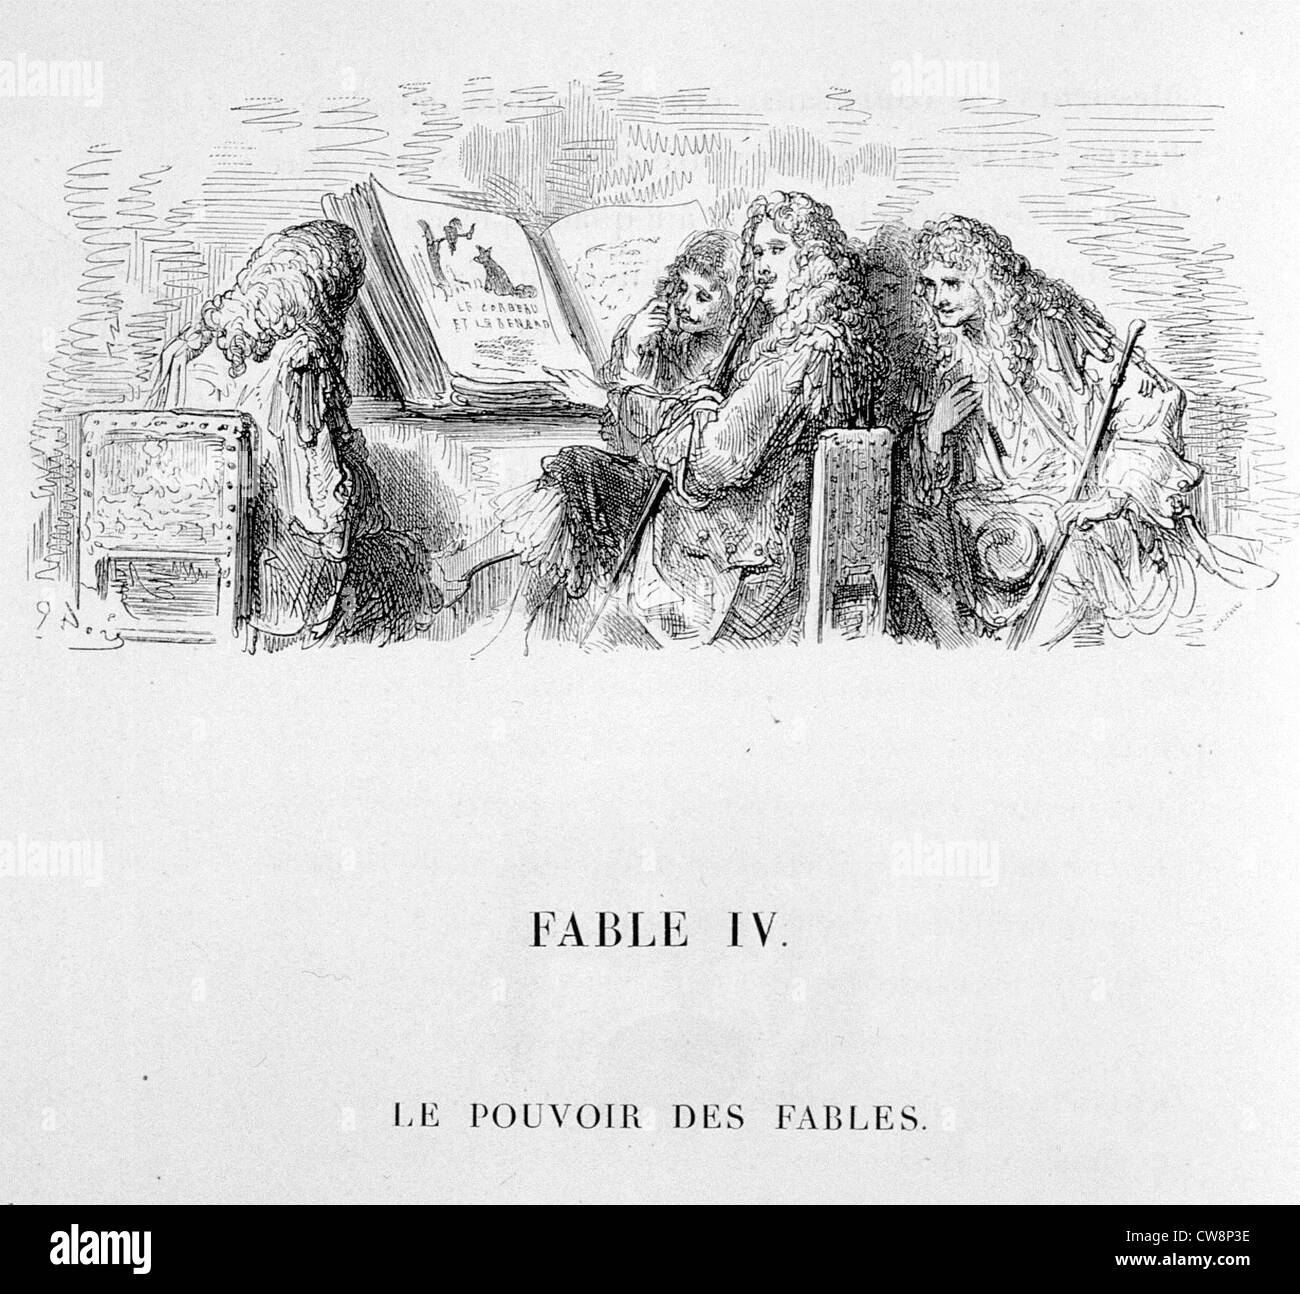 La Fontaine's Fable, illustration by Gustave Doré - Stock Image